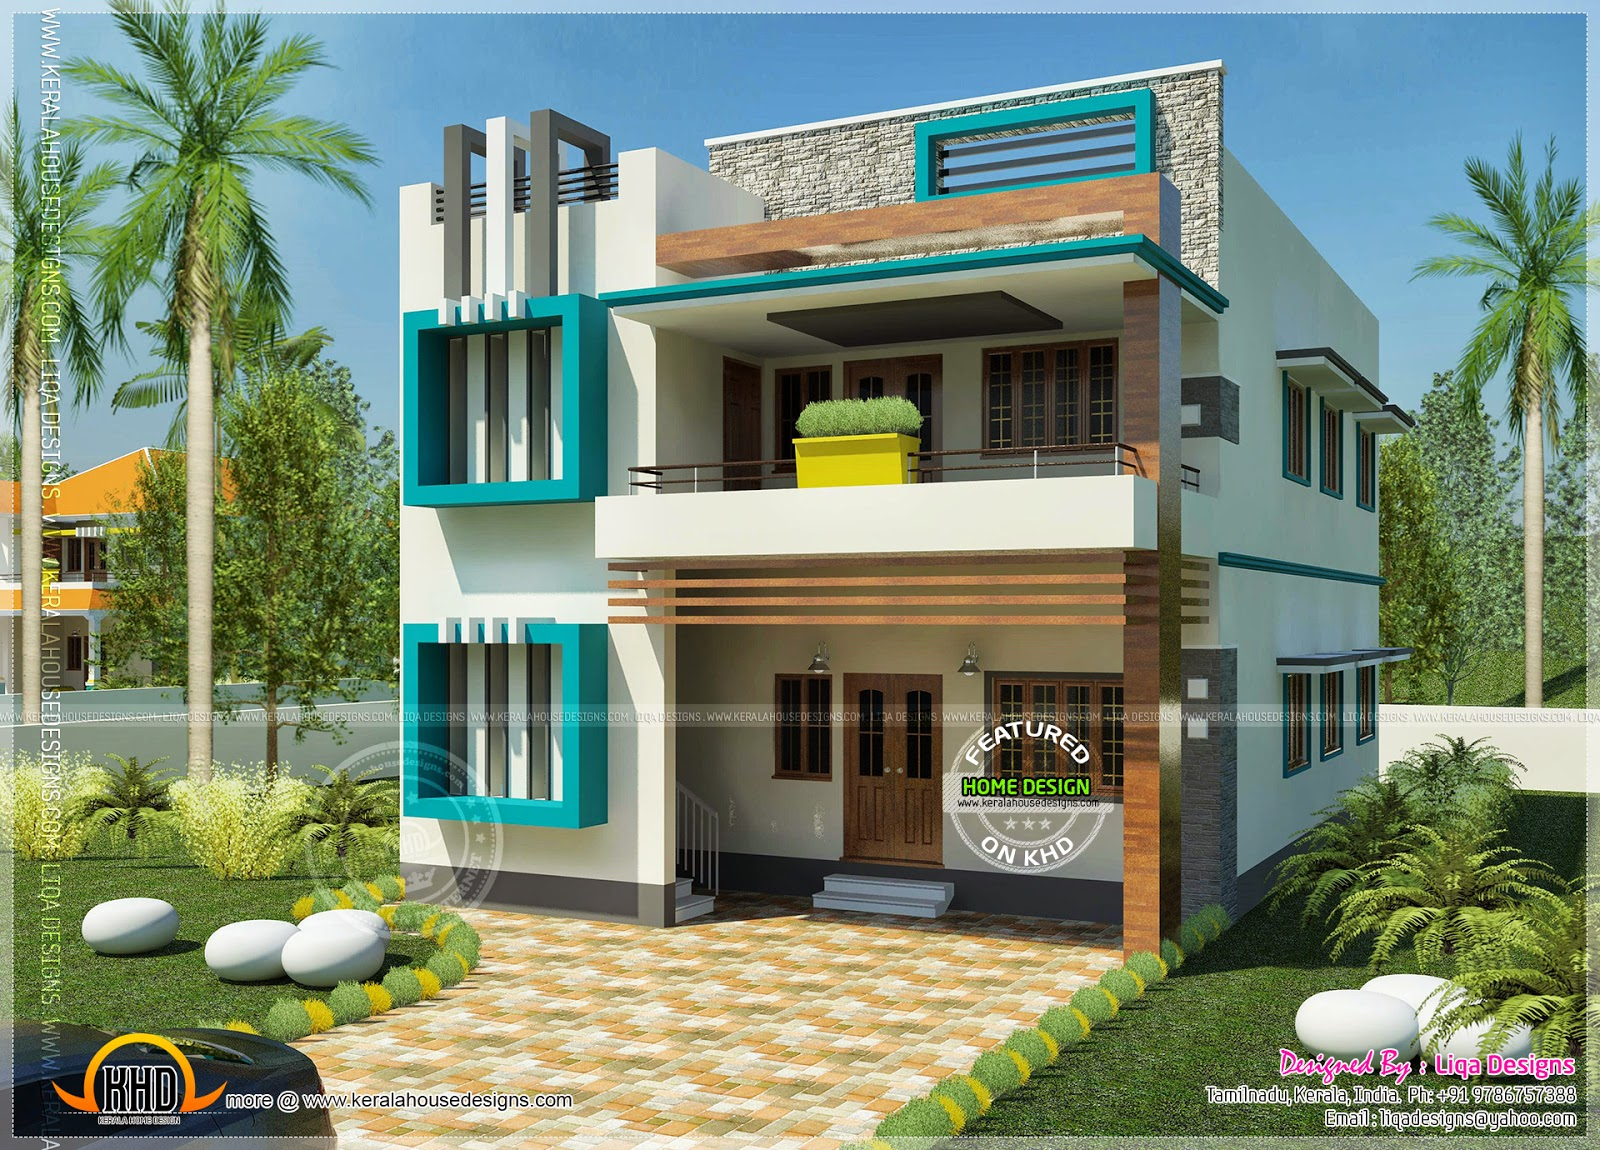 South indian contemporary home kerala home design and for South indian small house designs